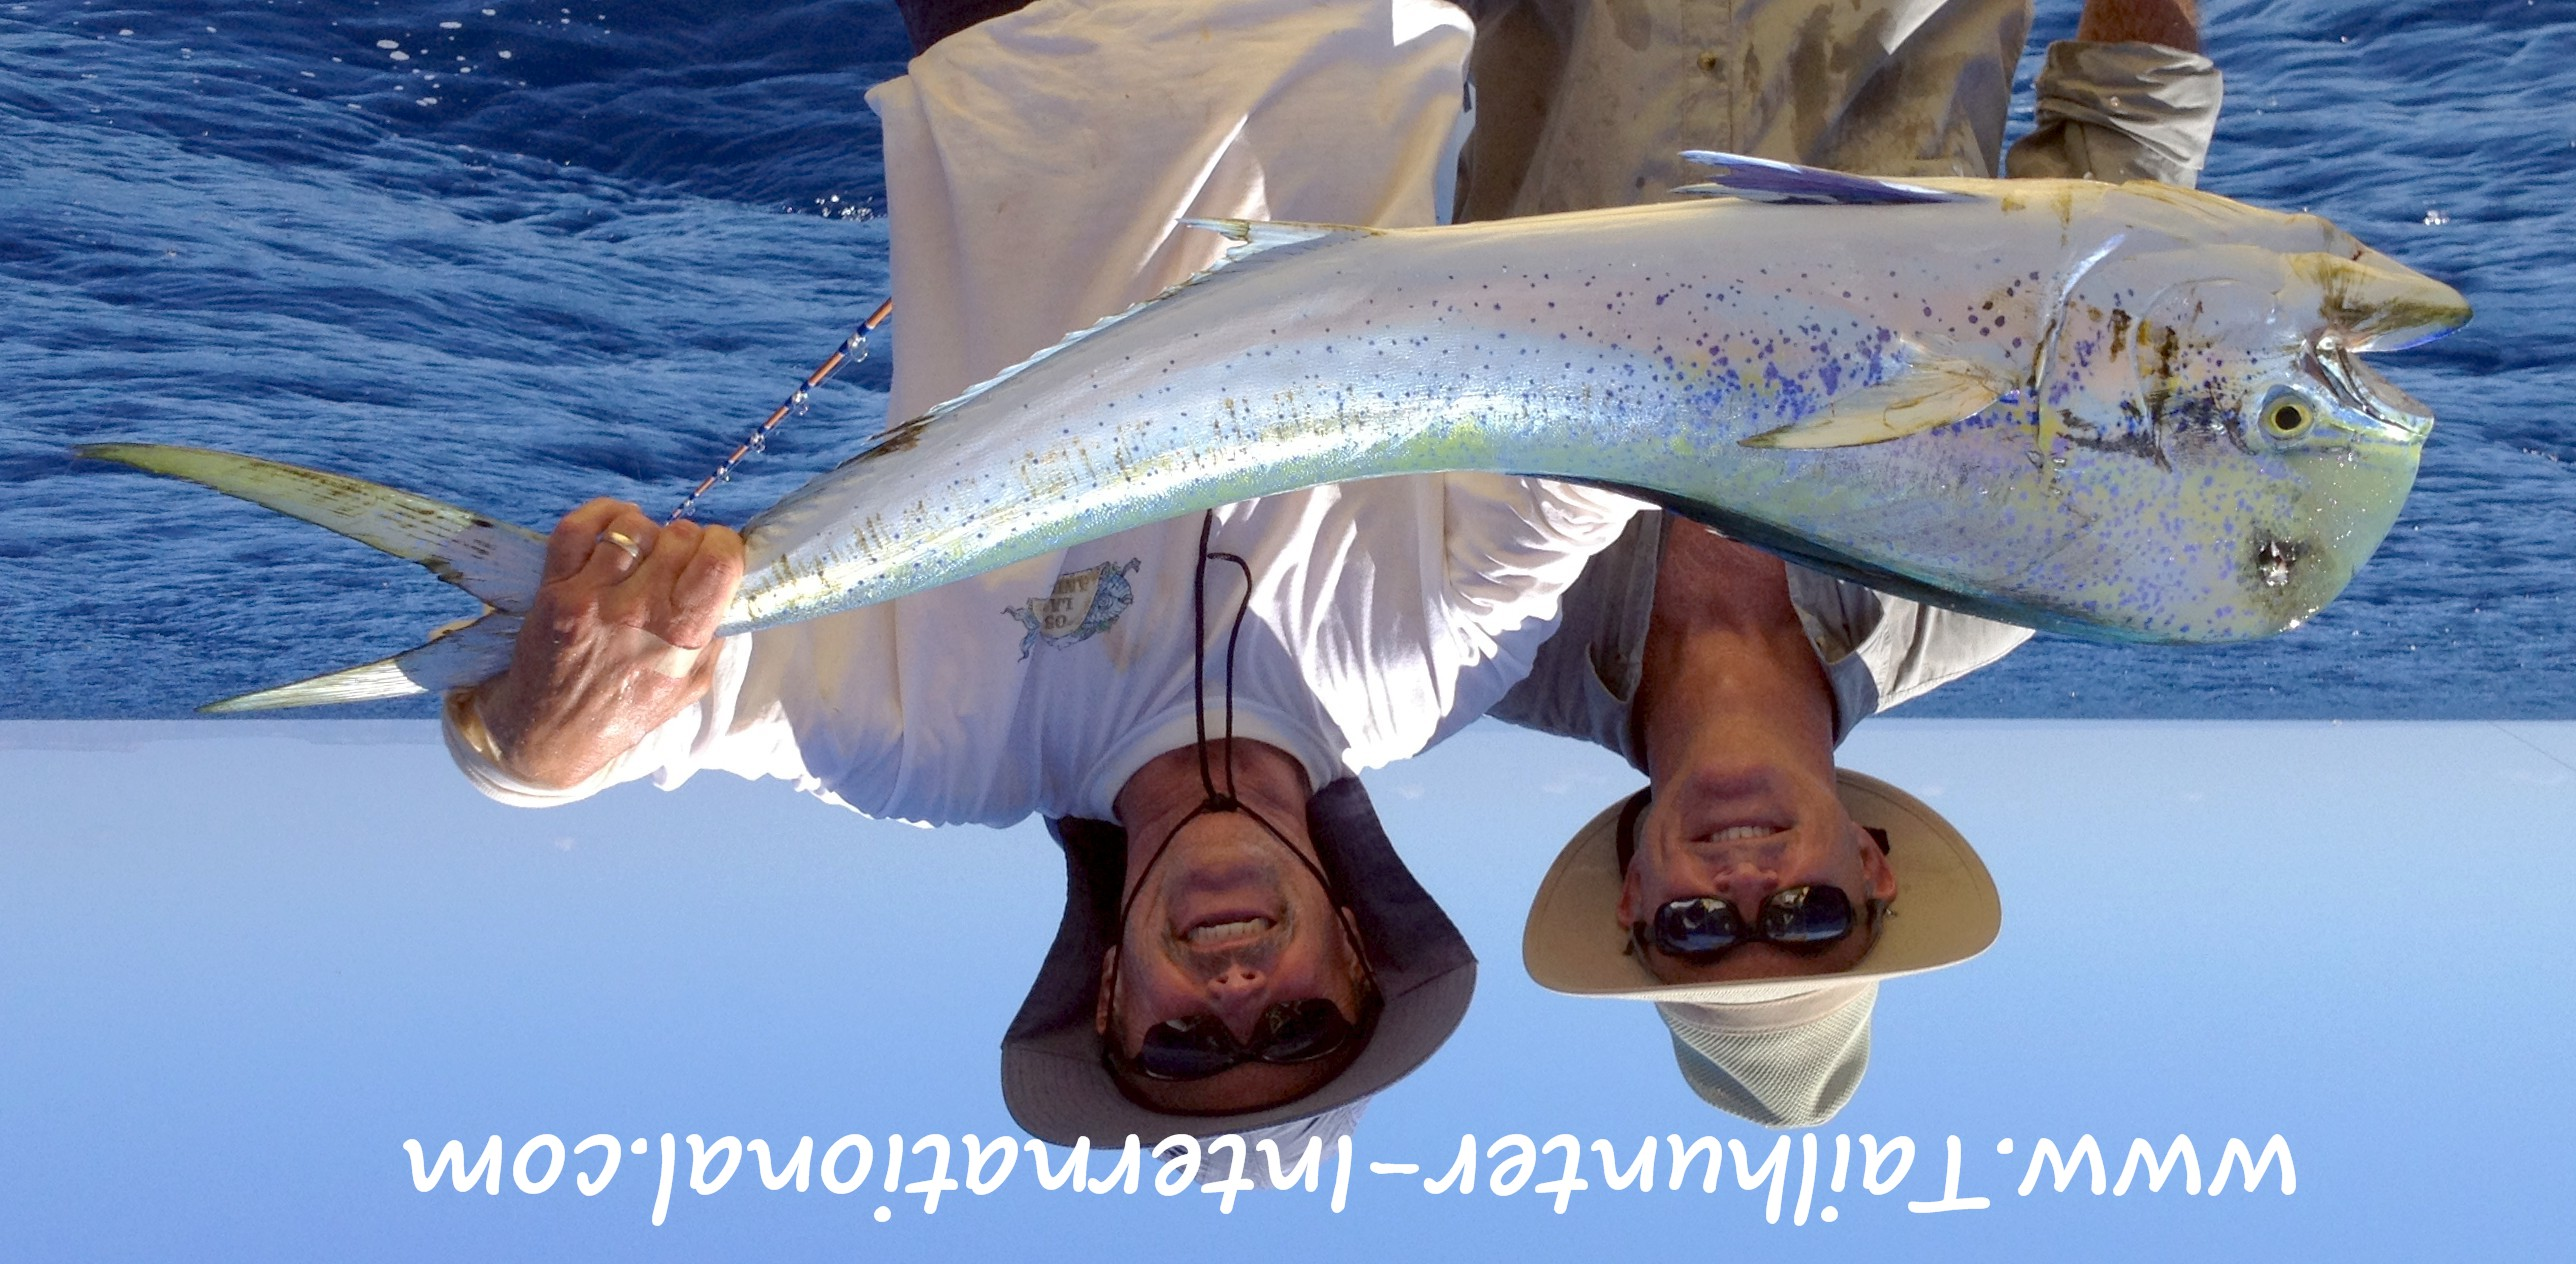 La paz las arenas fishing report from tailhunter for Dana point fish report